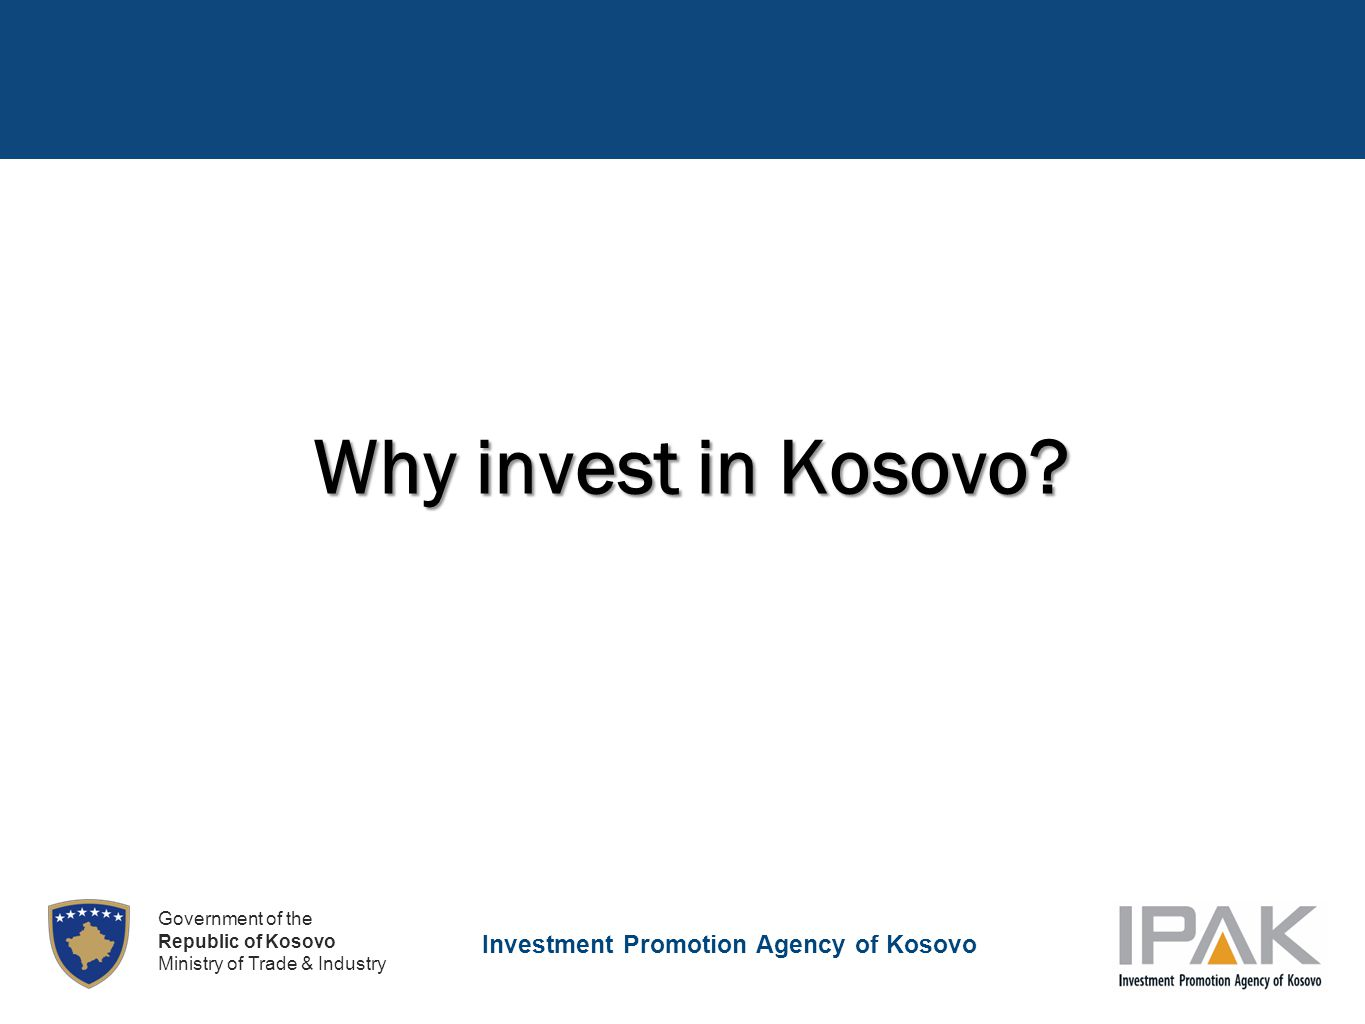 Investment Promotion Agency of Kosovo Government of the Republic of Kosovo Ministry of Trade & Industry Why invest in Kosovo